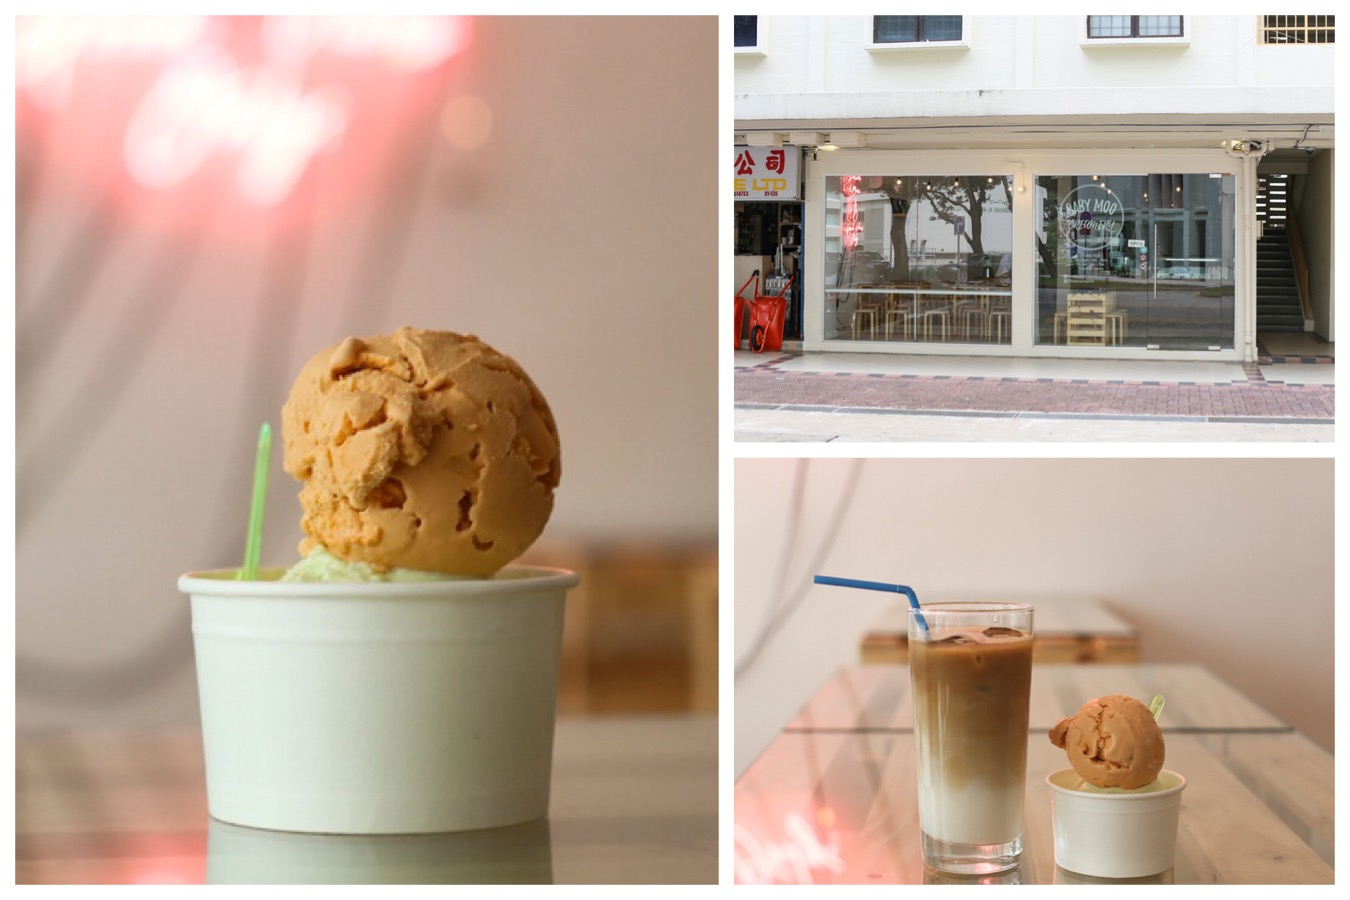 Baby Moo Creamery - NEW Gelato Cafe At Toa Payoh Lor 6, With Mao Shan Wang And Belgium Dark Chocolate Flavours